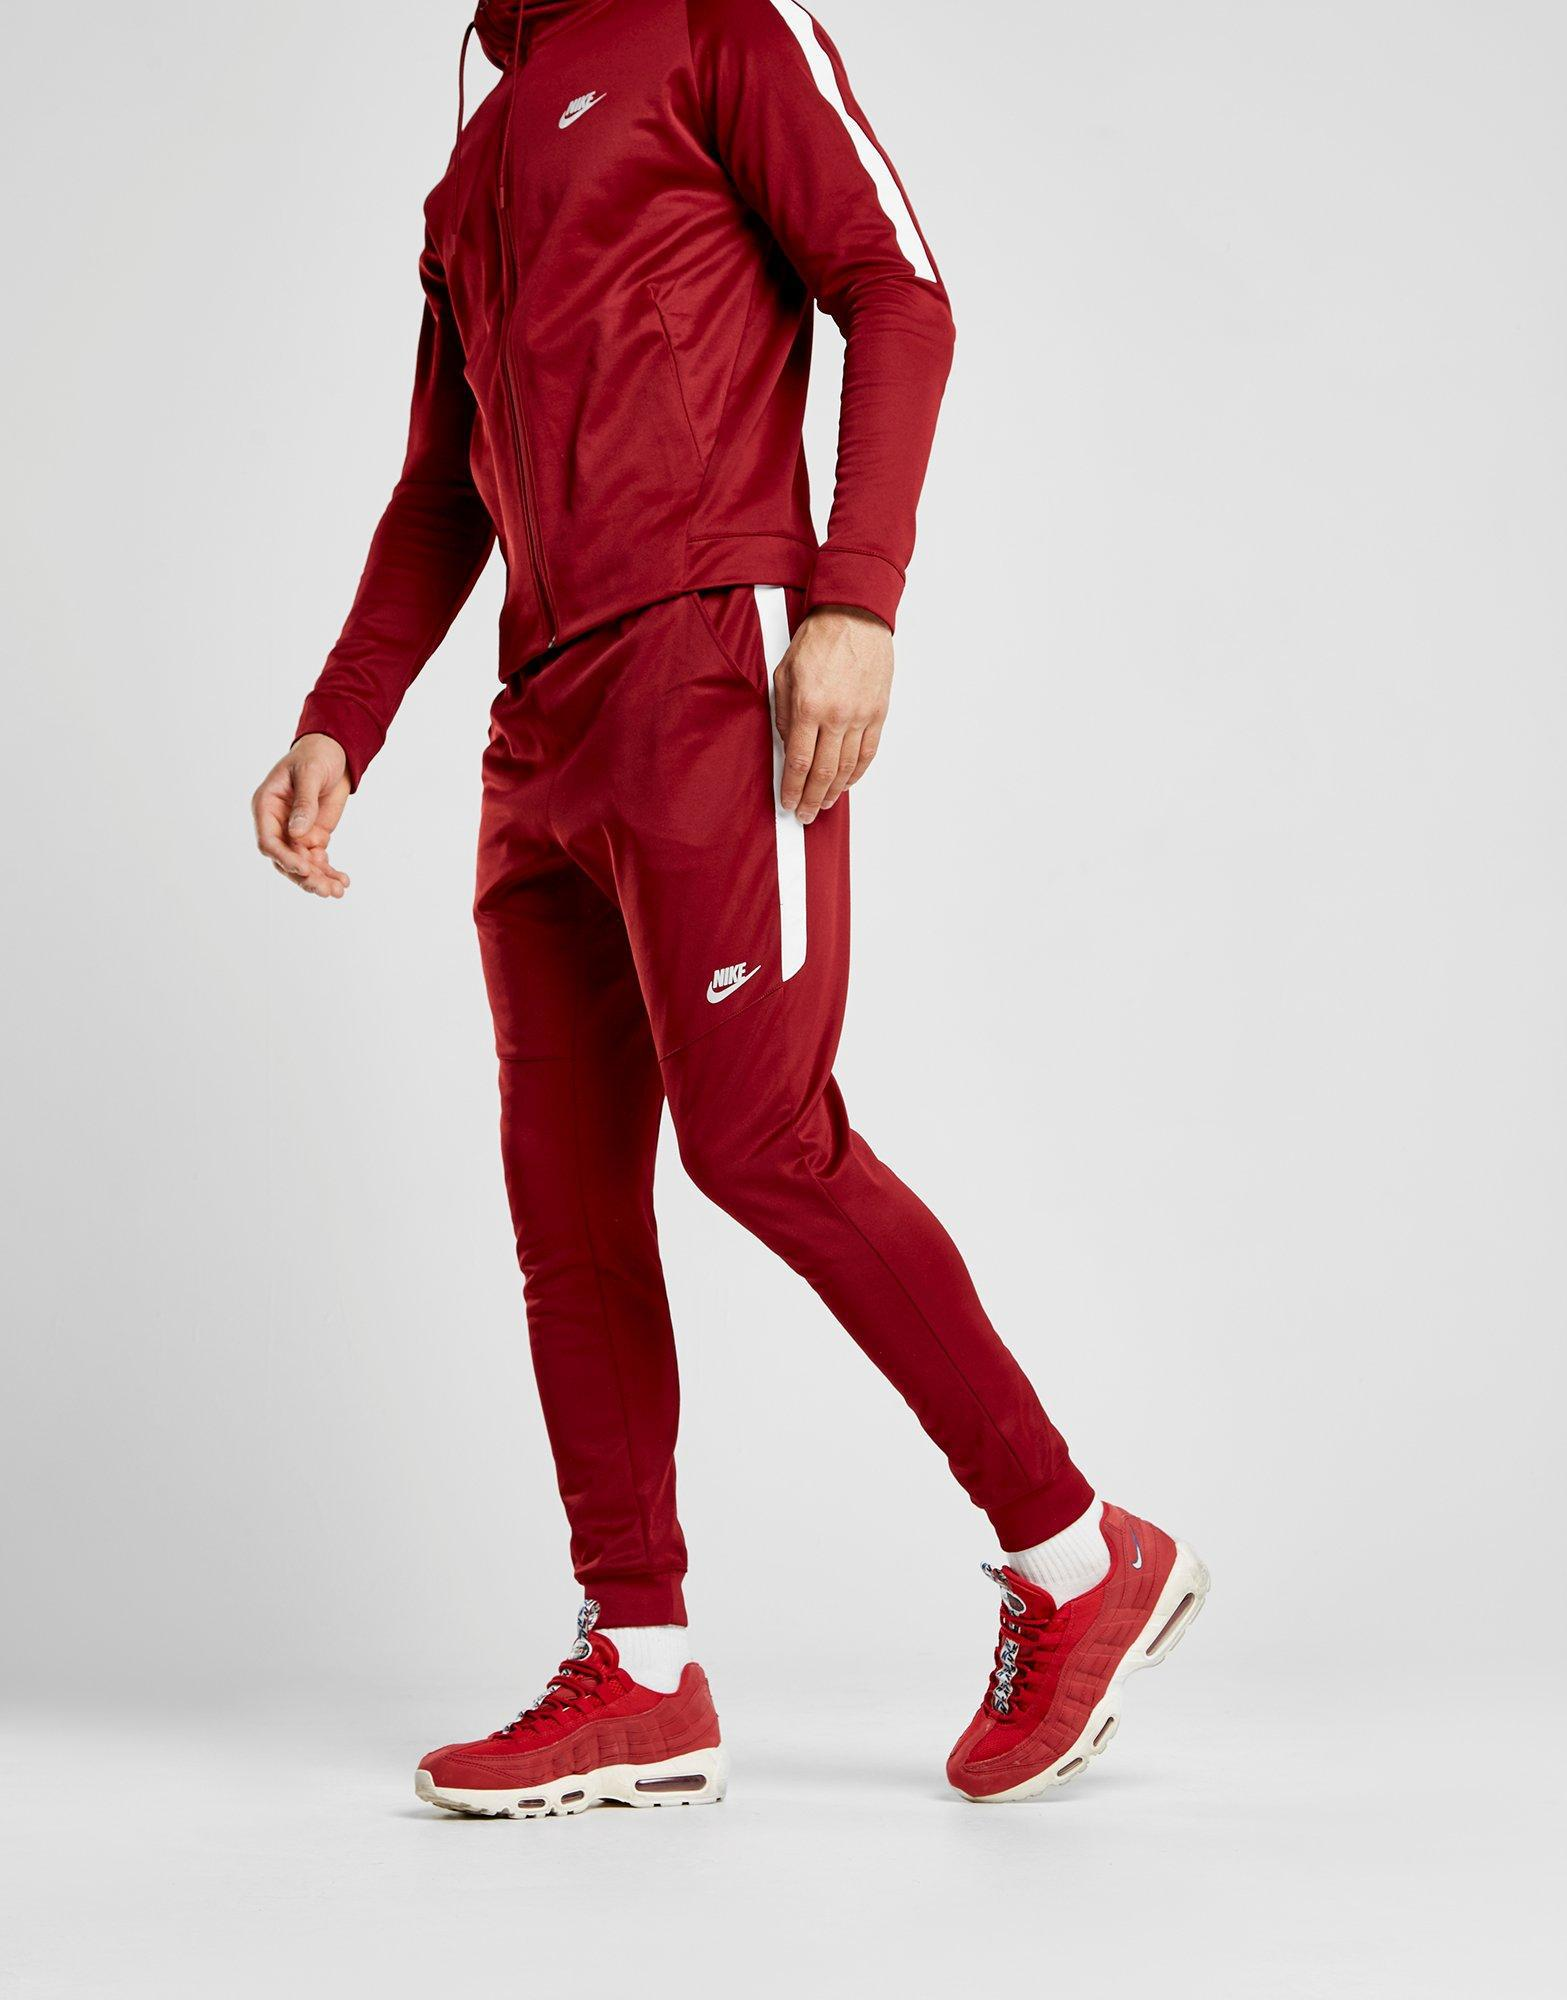 a206c28f067d Nike Tribute Dc Pants in Red for Men - Lyst